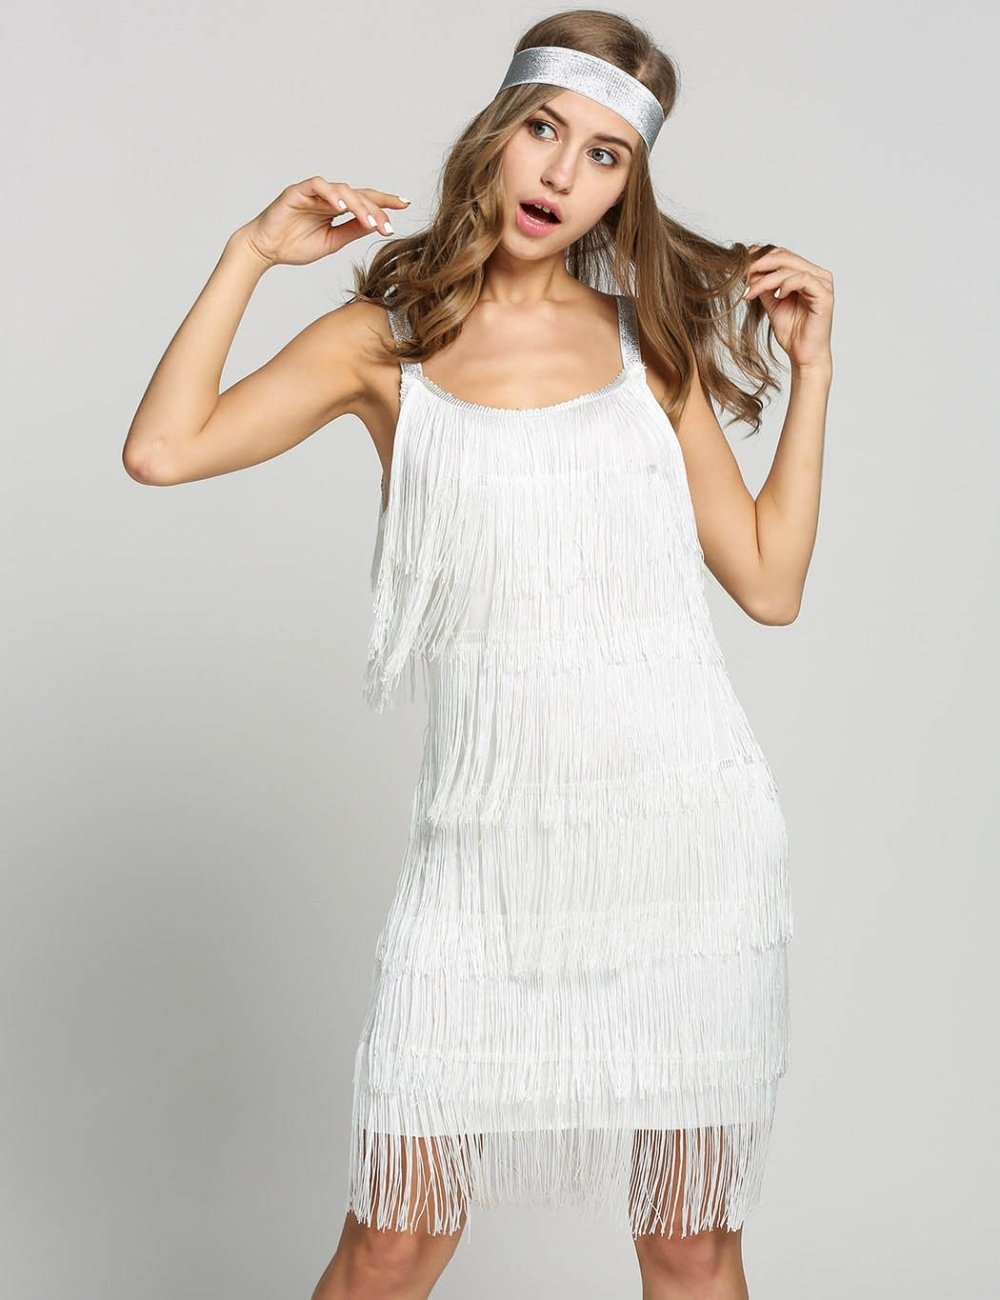 flapper fringe dress (2)